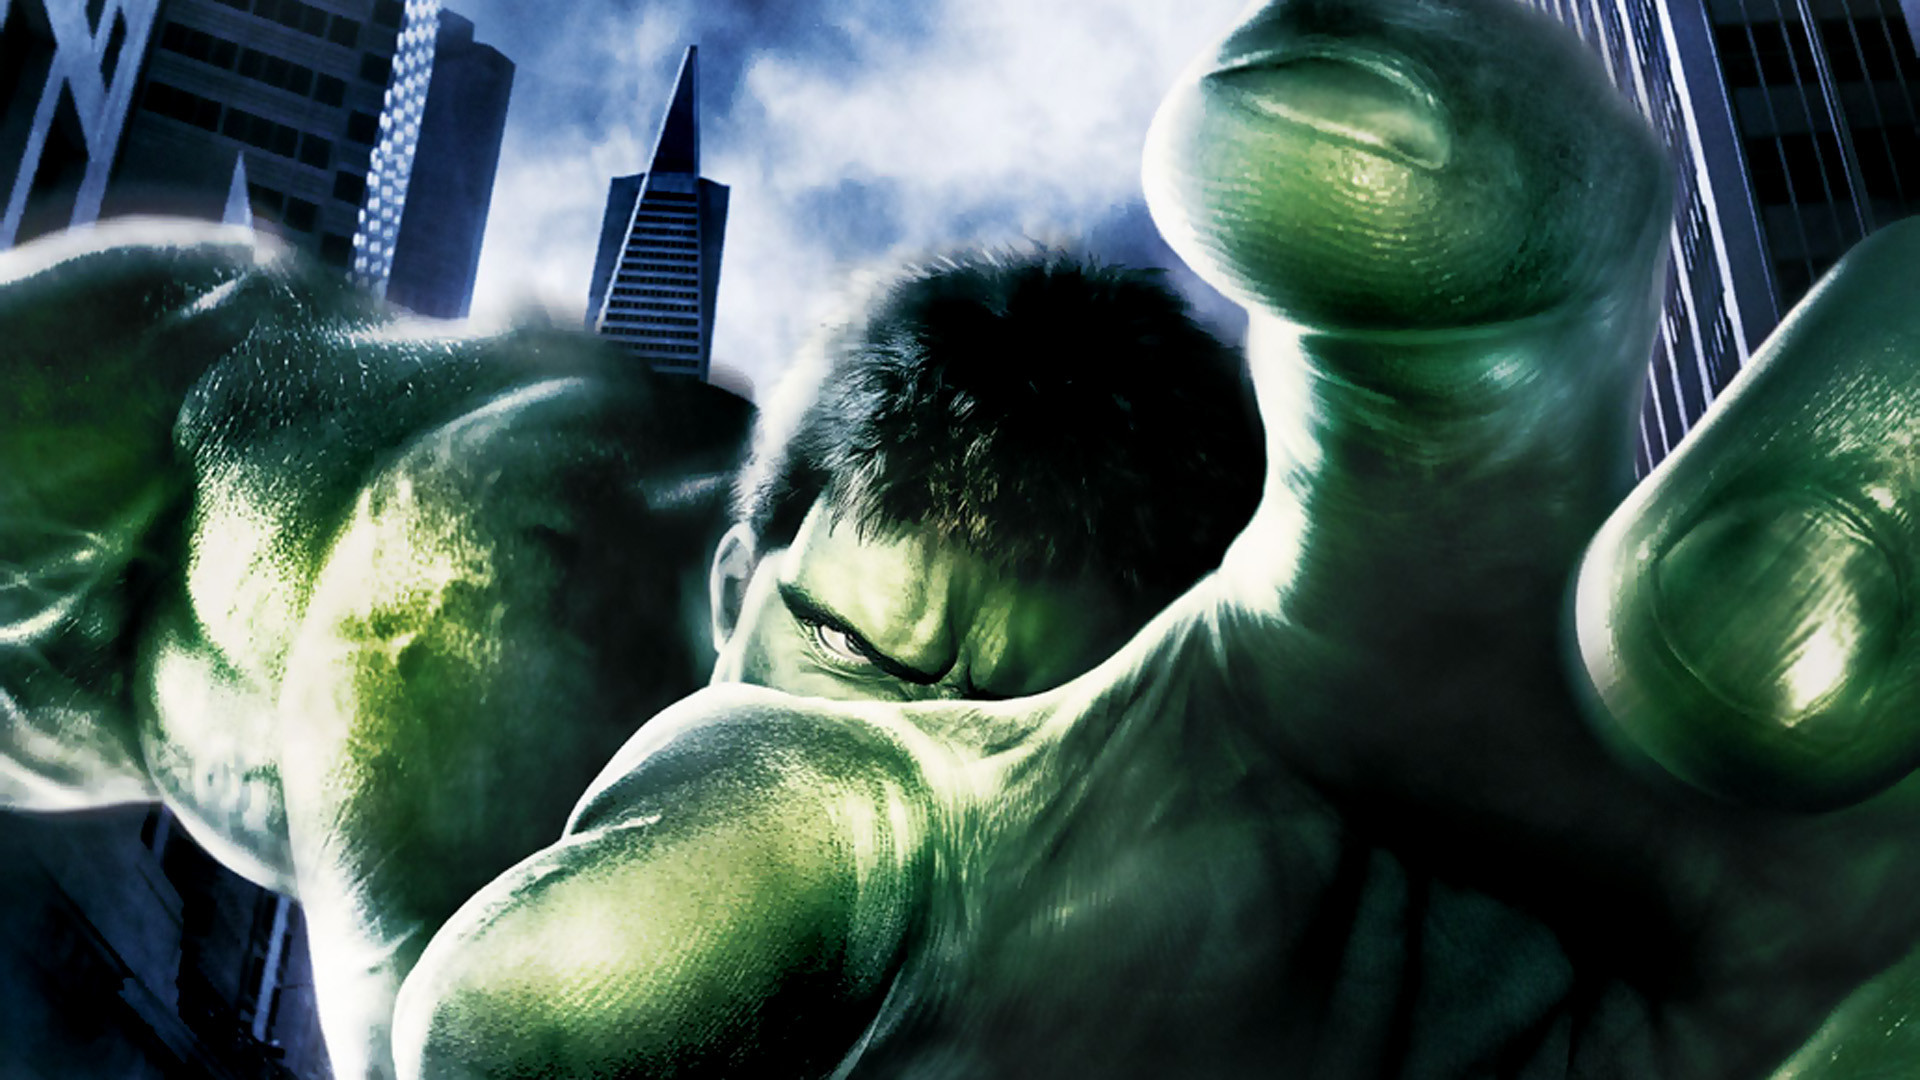 Hulk Movie Wallpapers HD Wallpapers 1920x1080